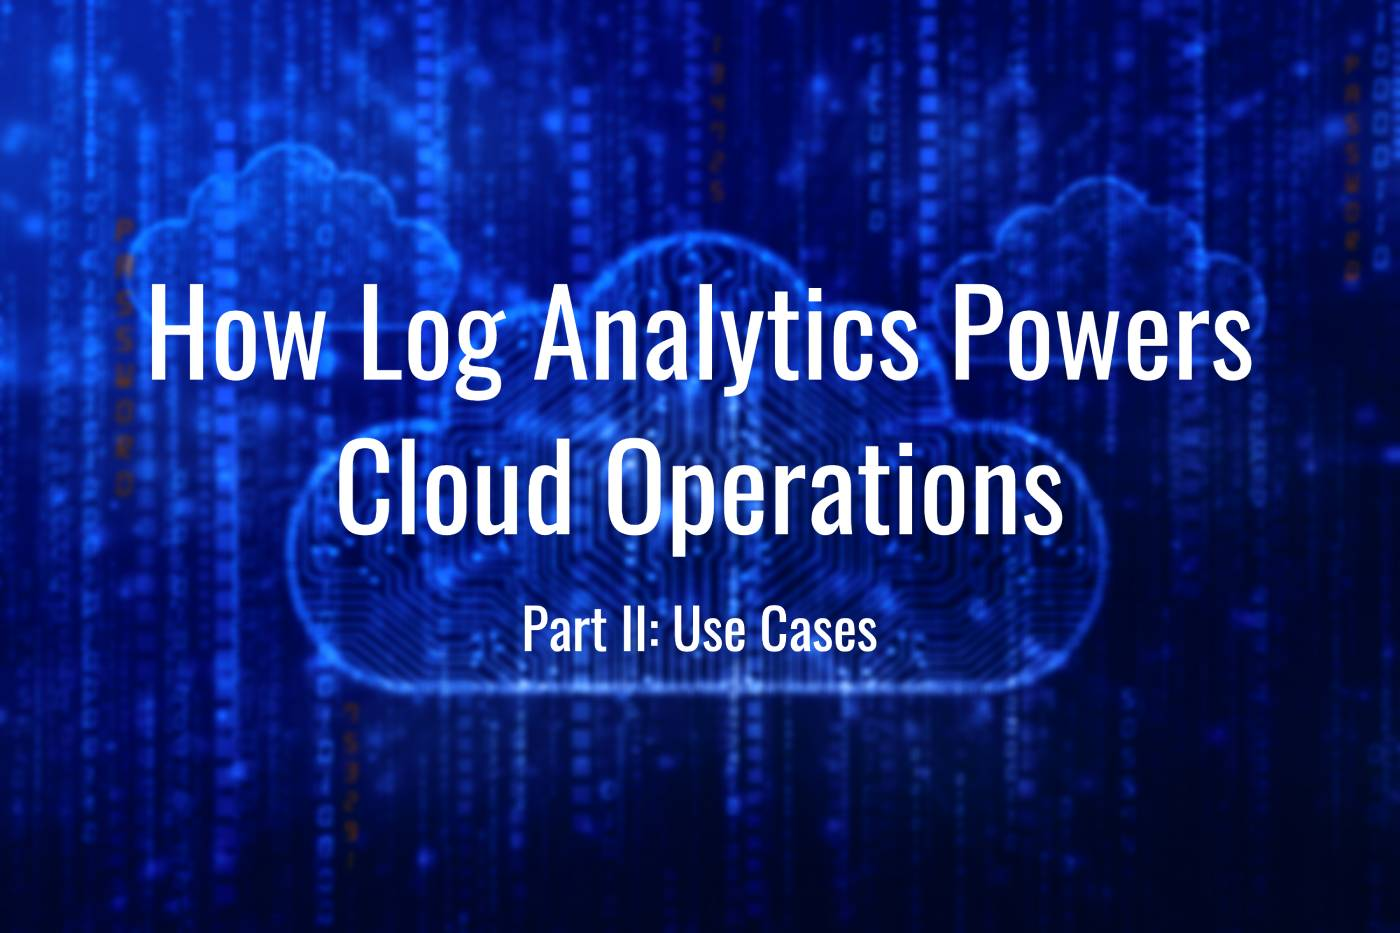 How Log Analytics Powers Cloud Operations, Part II: Use Cases